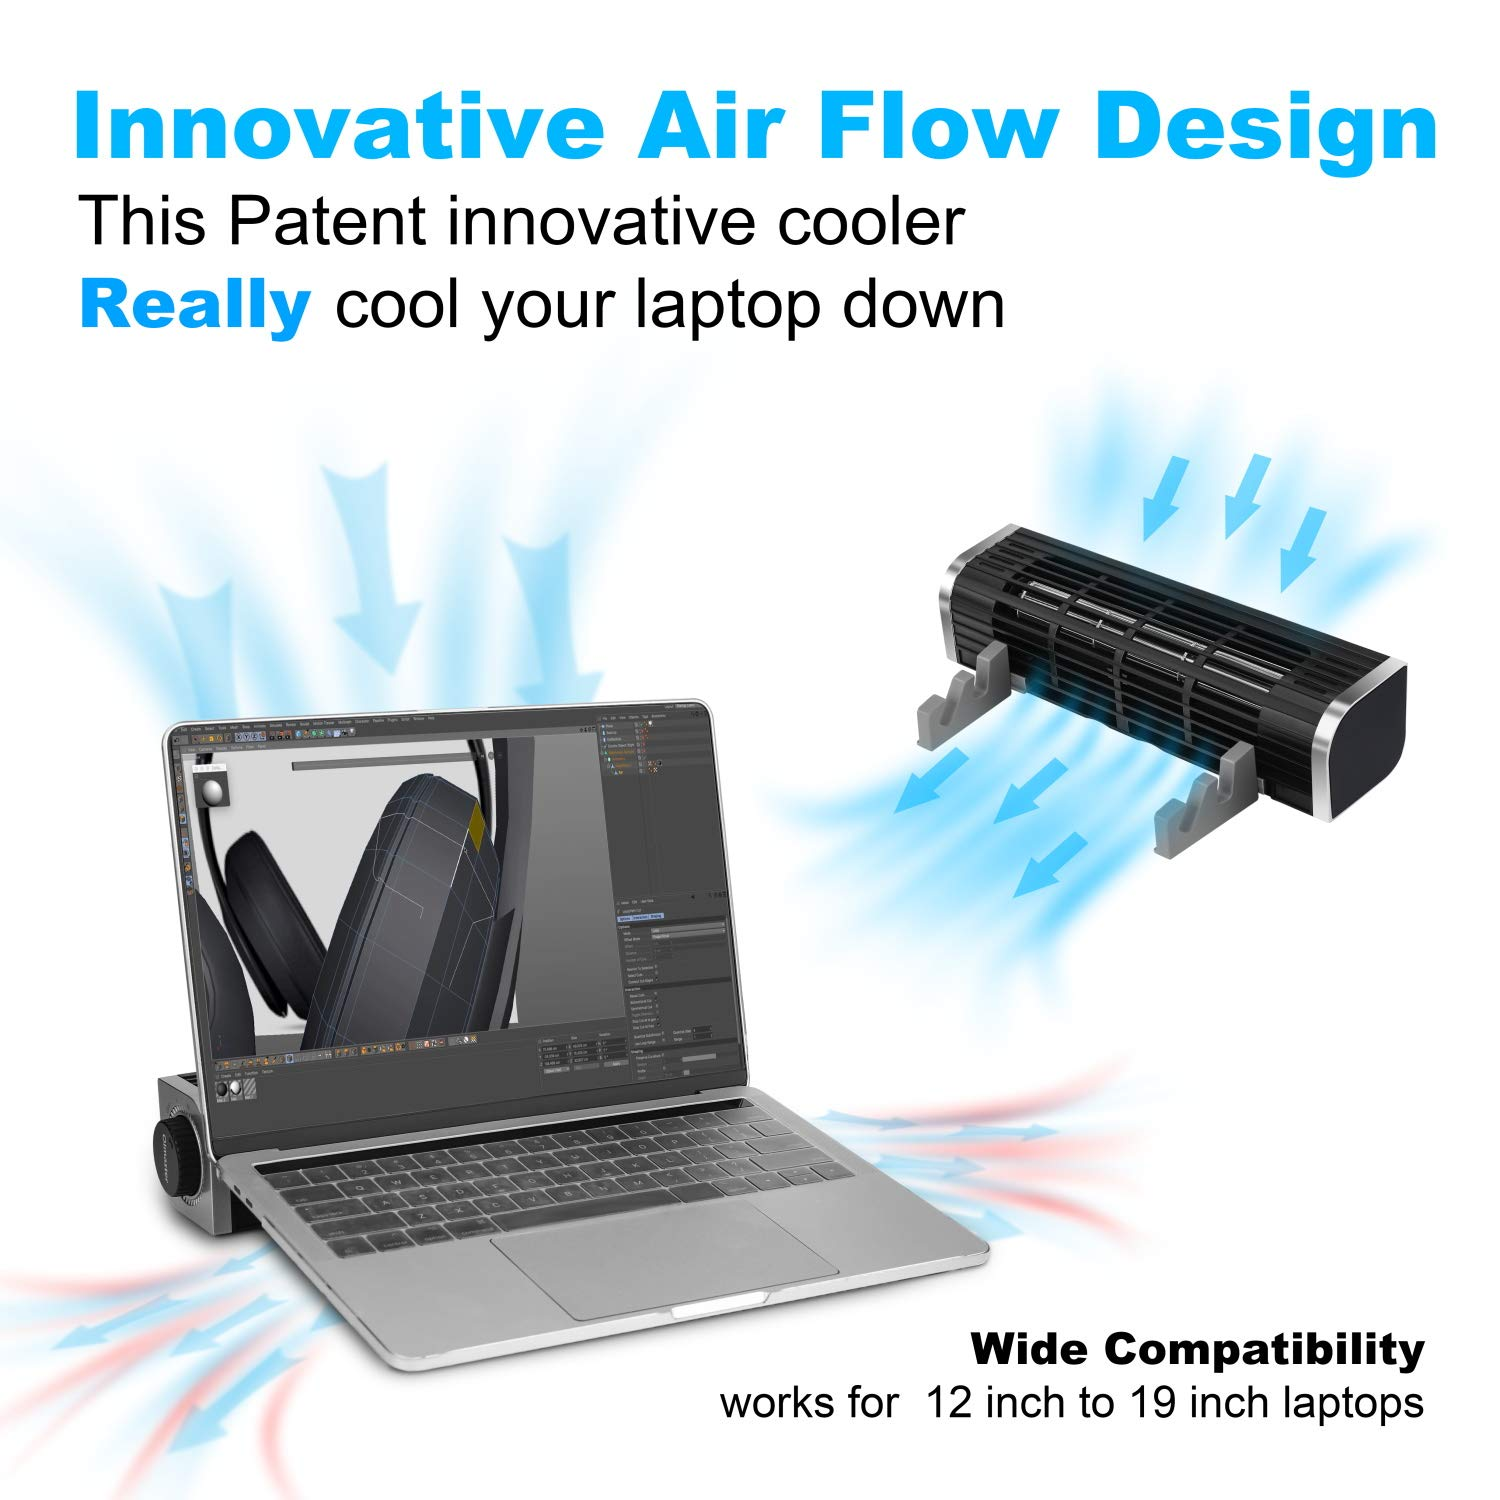 oimaster Laptop Cooler with Adjustable Stand, USB Laptop Cross-Flow Cooling Fan Pad & Phone Cooling Holder by oimaster (Image #2)